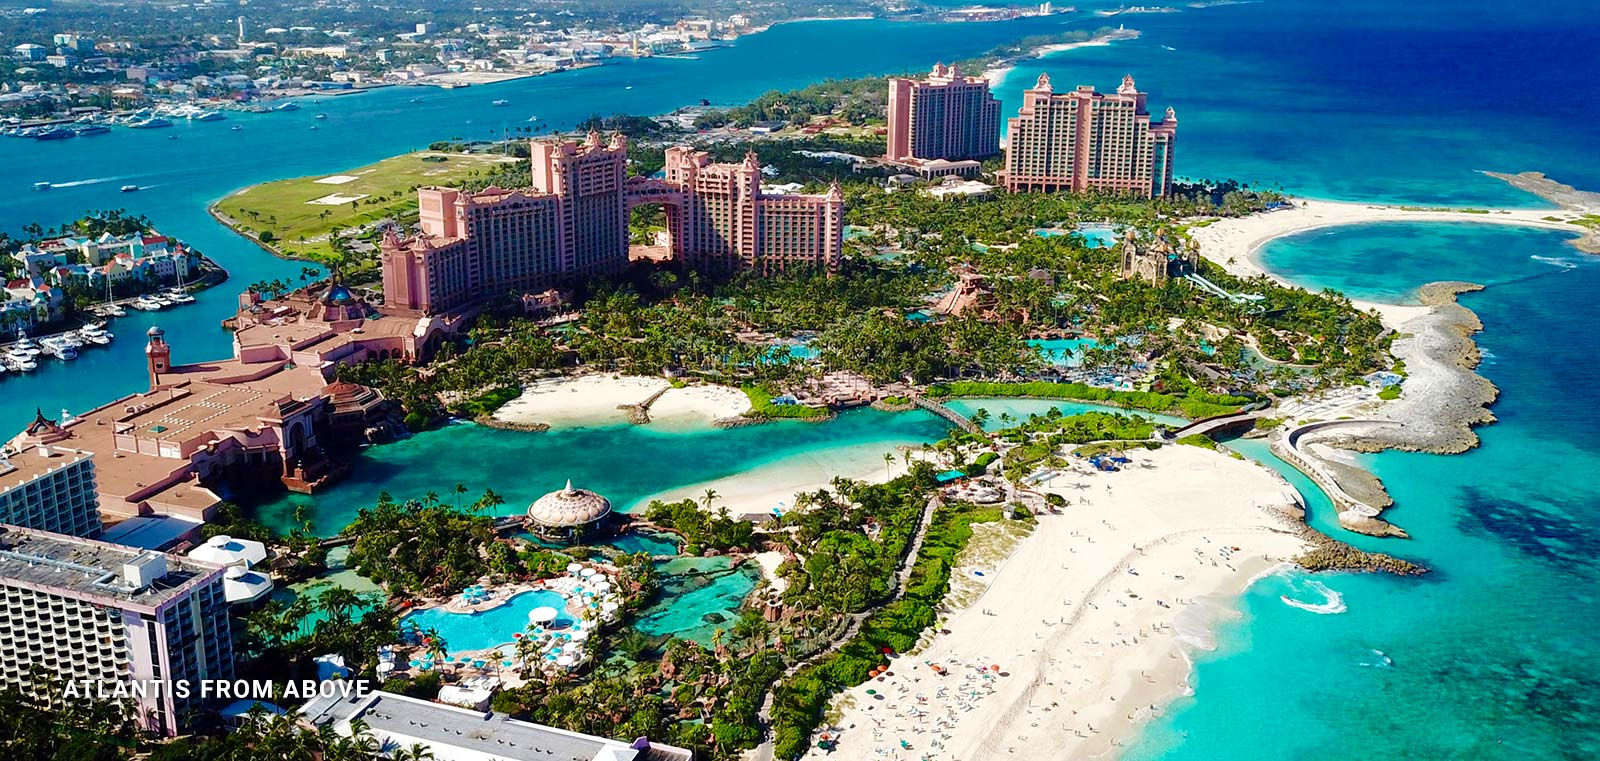 Luxury Group On Twitter The Royal At Atlantis Resort In Paradise Island Bahamas Epitome Of Luxury In Bahamas Bahamas Paradiseisland Bahamashotels Paradiseislandhotels Atlantis Bahamas Https T Co Fvwzvopzw5 Https T Co Nc5ljzrj7x